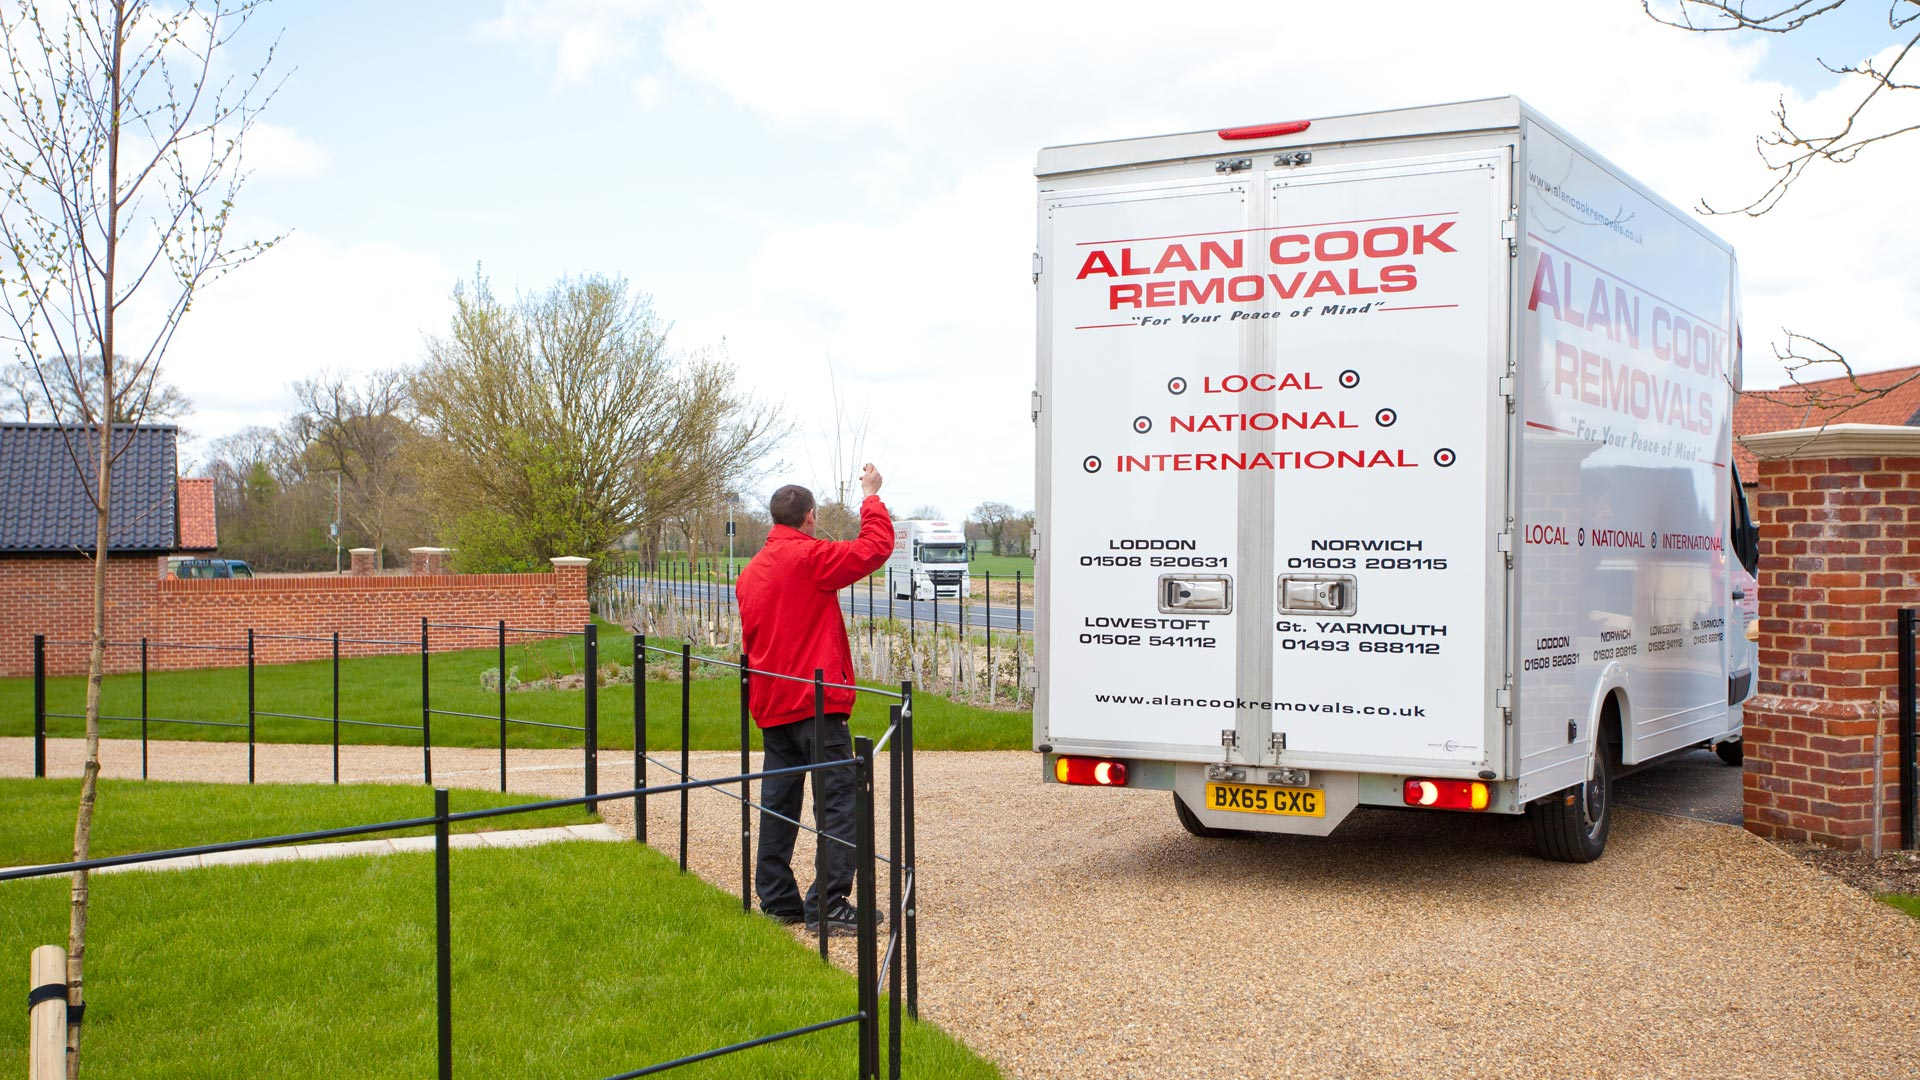 Taking the stress out of moving - Alan Cook Removals - Of all the Norwich Removals Companies we pride ourselves in offering the most prfessional, 